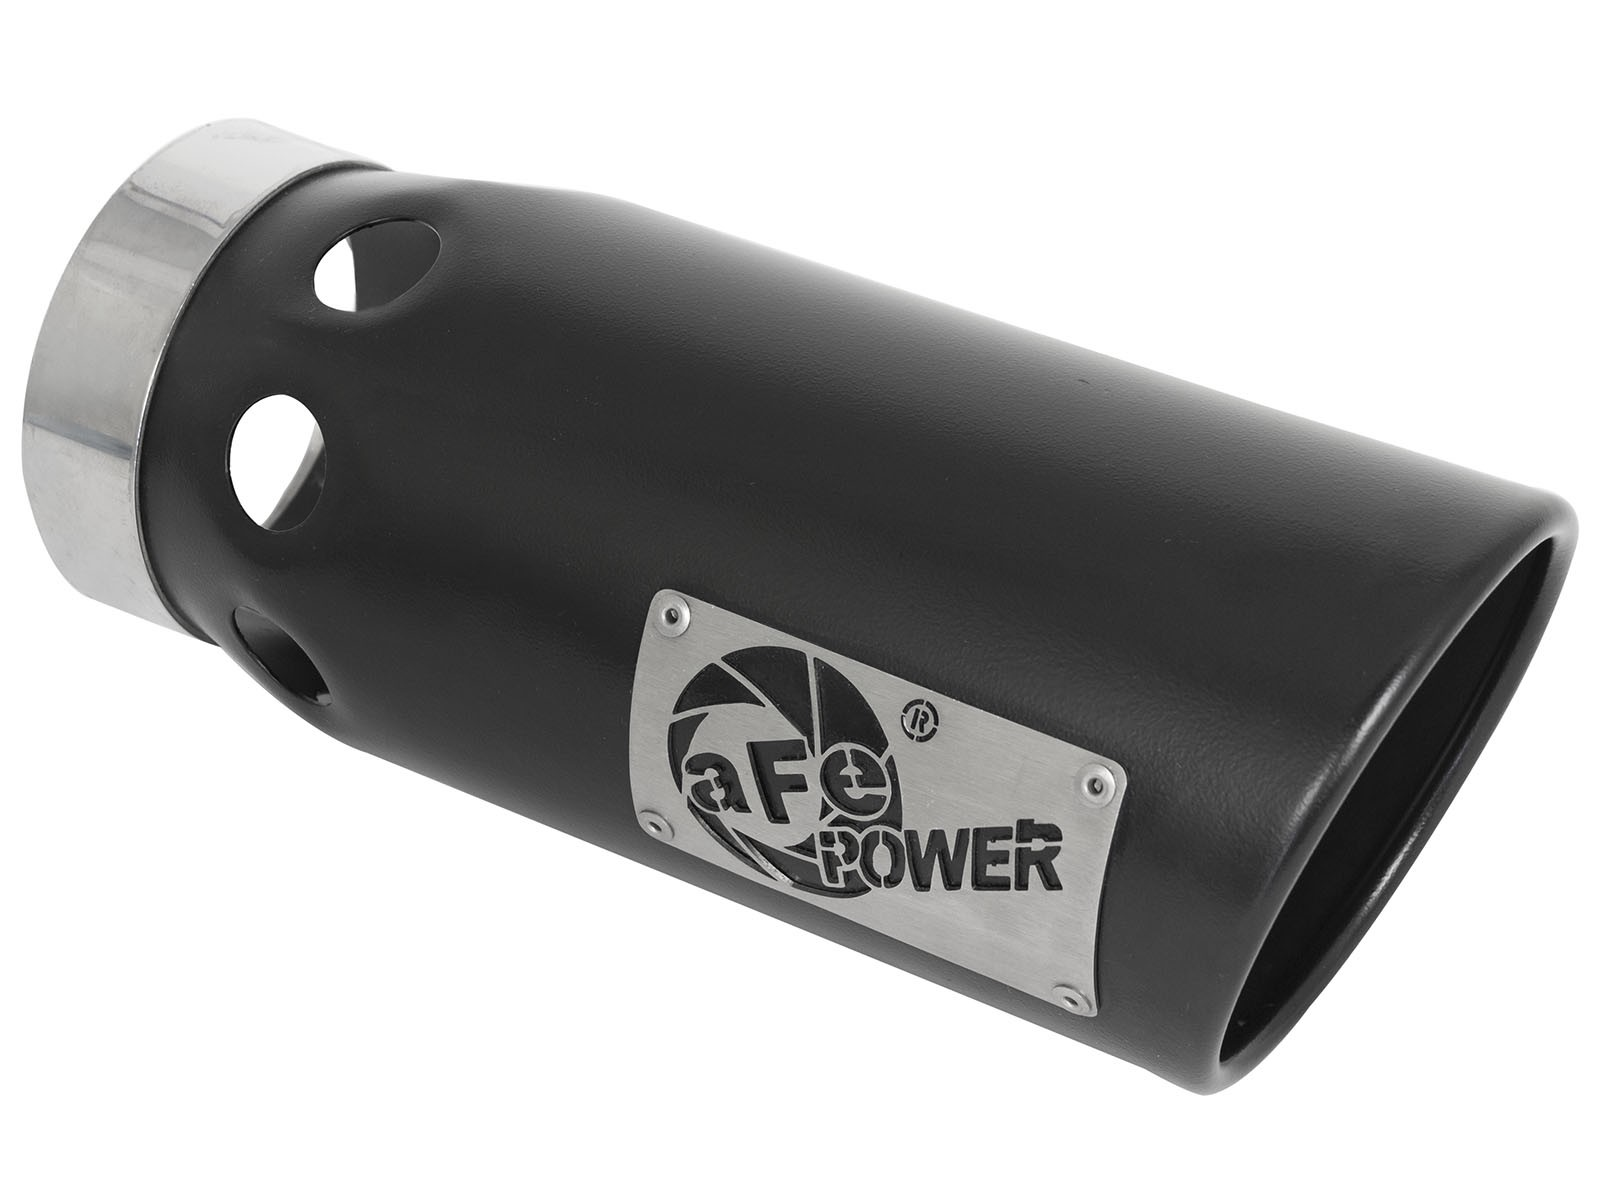 "MACH Force-Xp 5"" 409 Stainless Steel Intercooled Exhaust Tip"